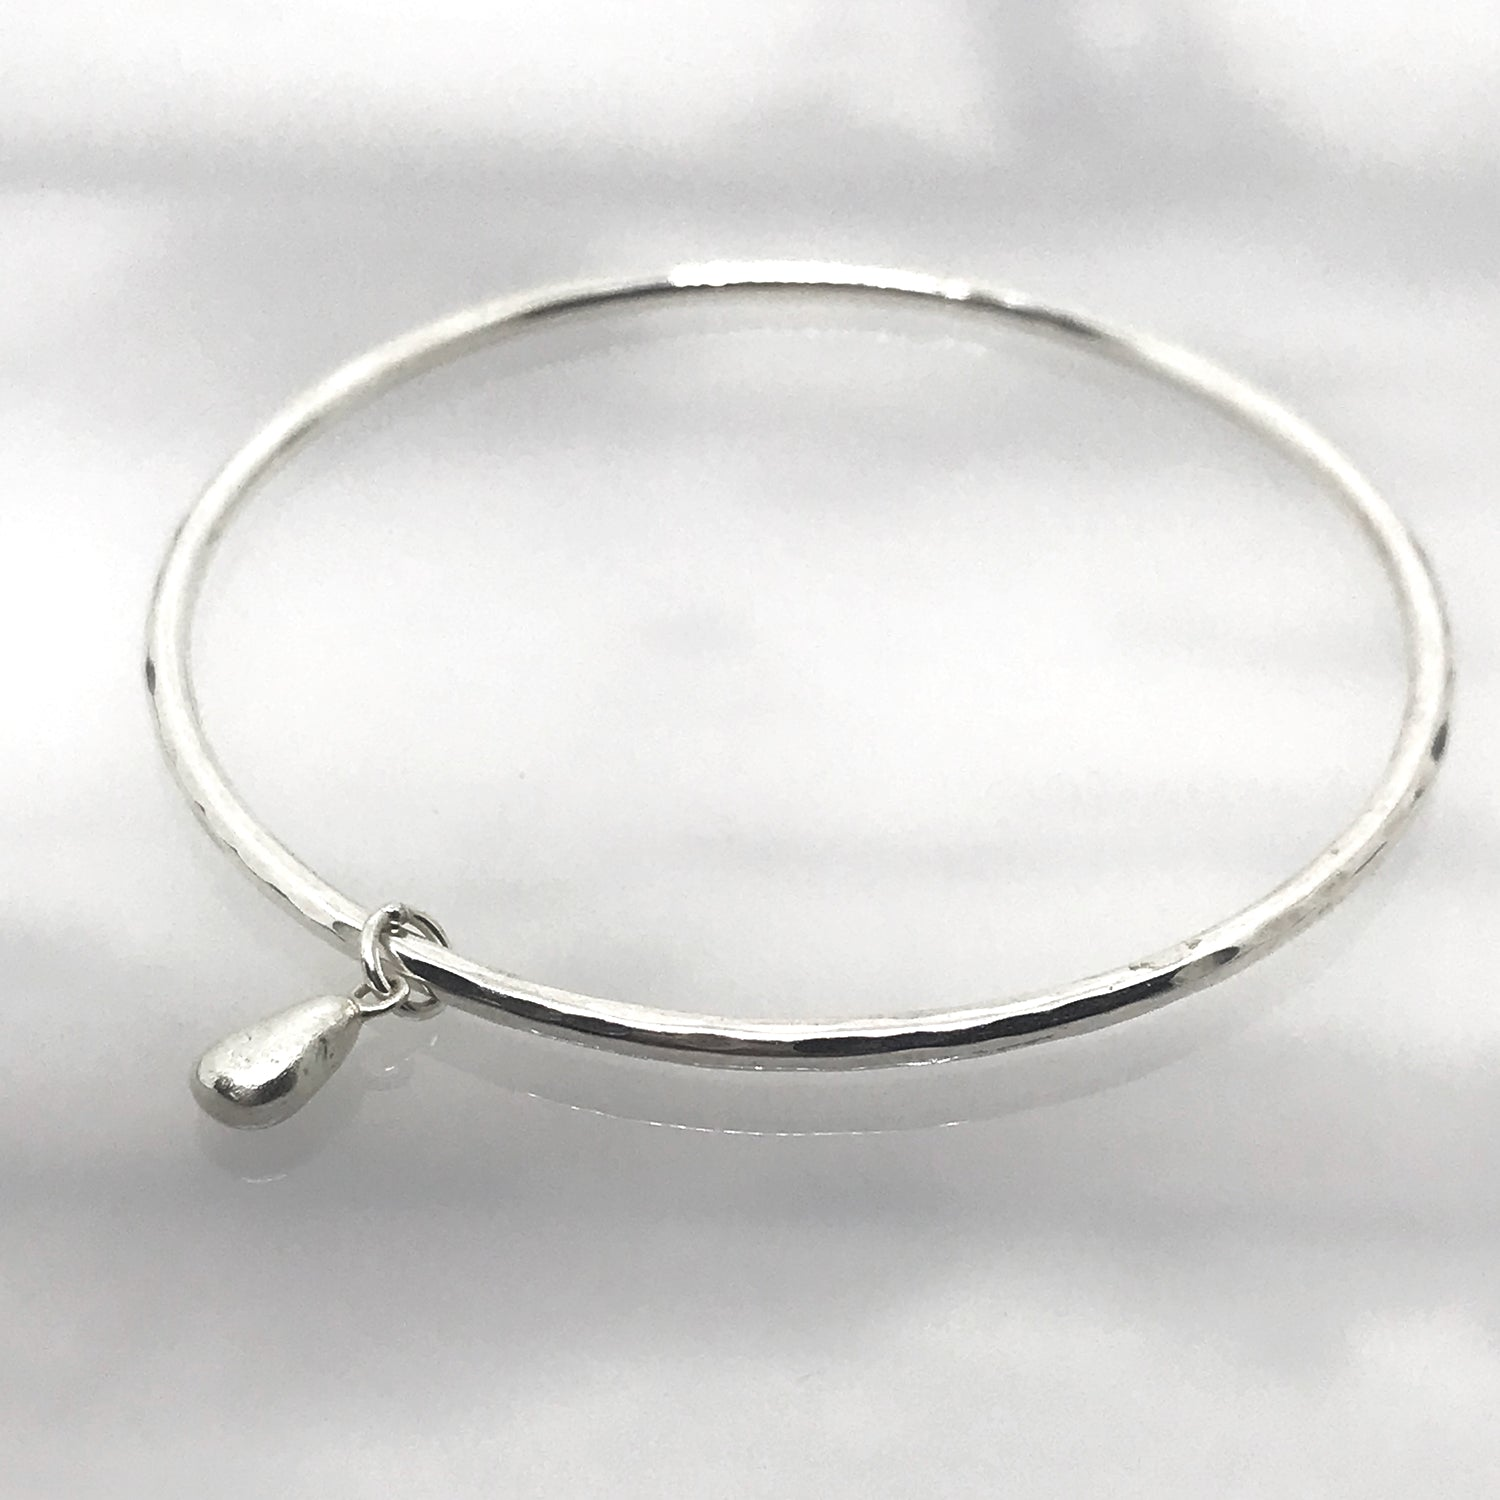 Silver Bangle with Solid Silver Charm - kriket broadhurst jewellery